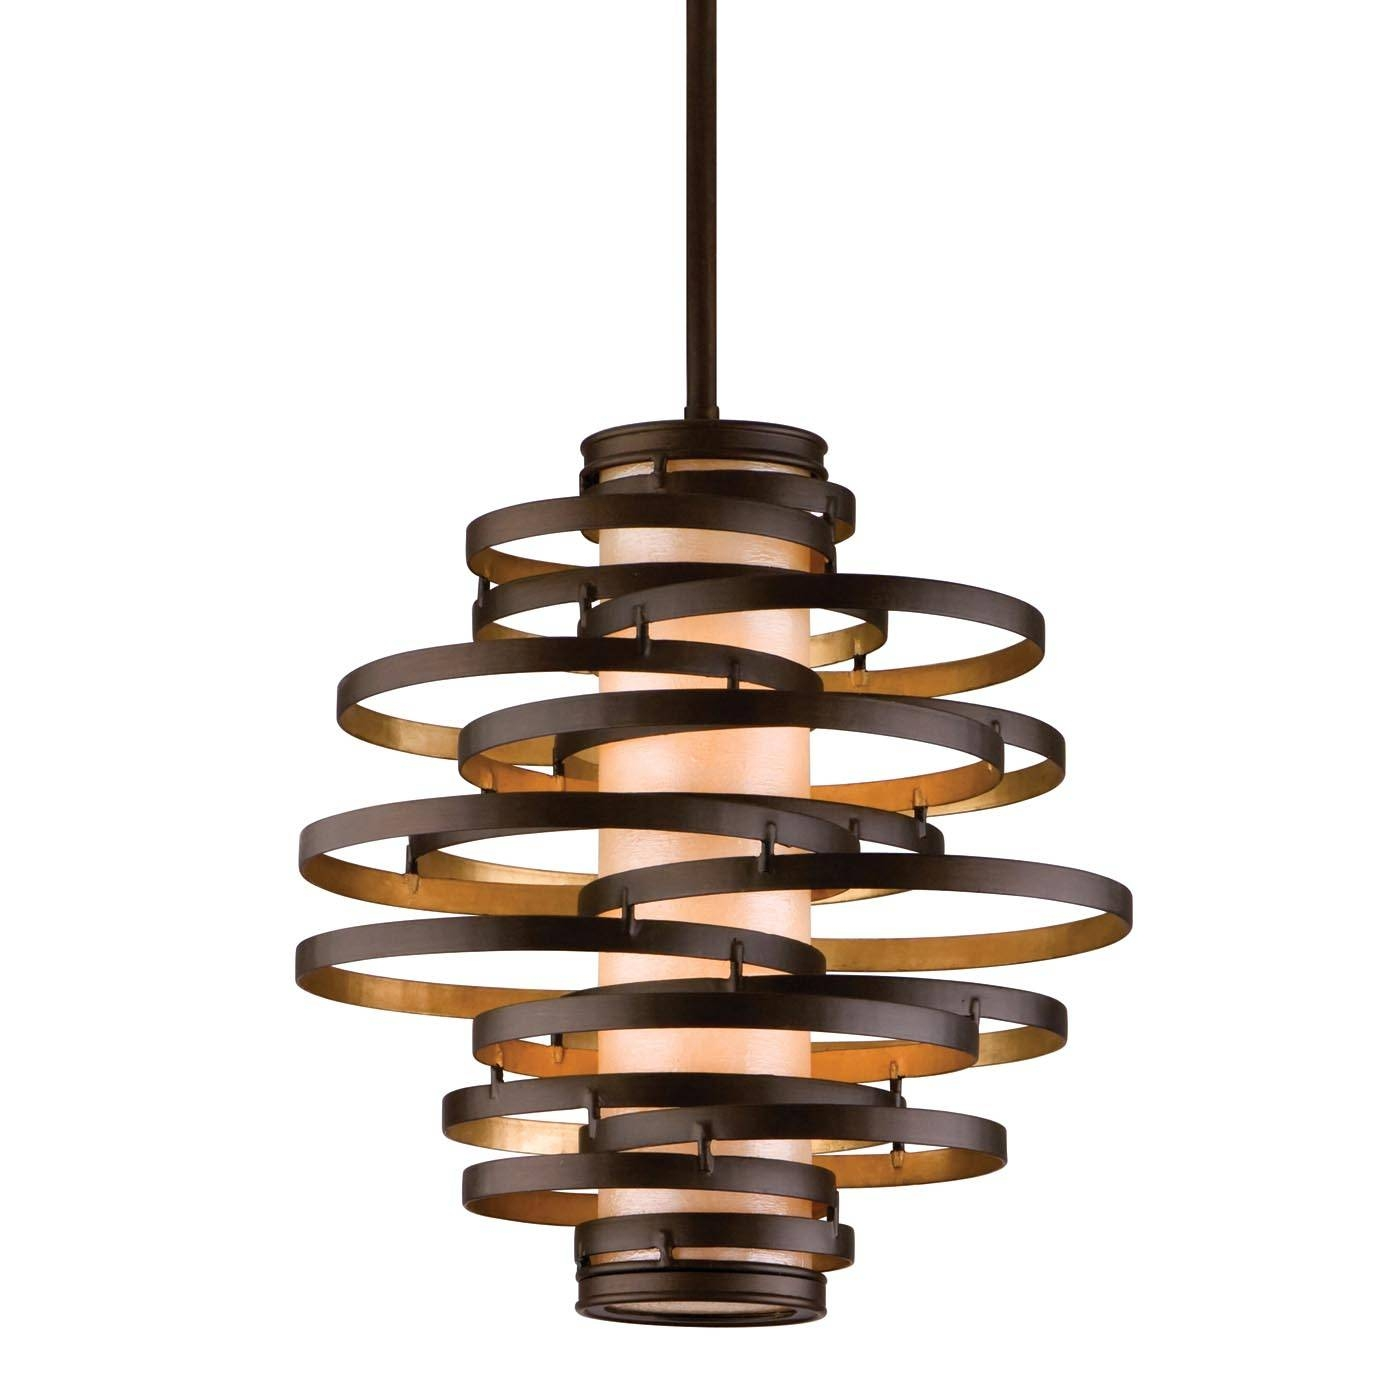 Corbett Lighting Vertigo Hanging Foyer Light | The Mine throughout Corbett Vertigo Small Pendant Lights (Image 14 of 15)